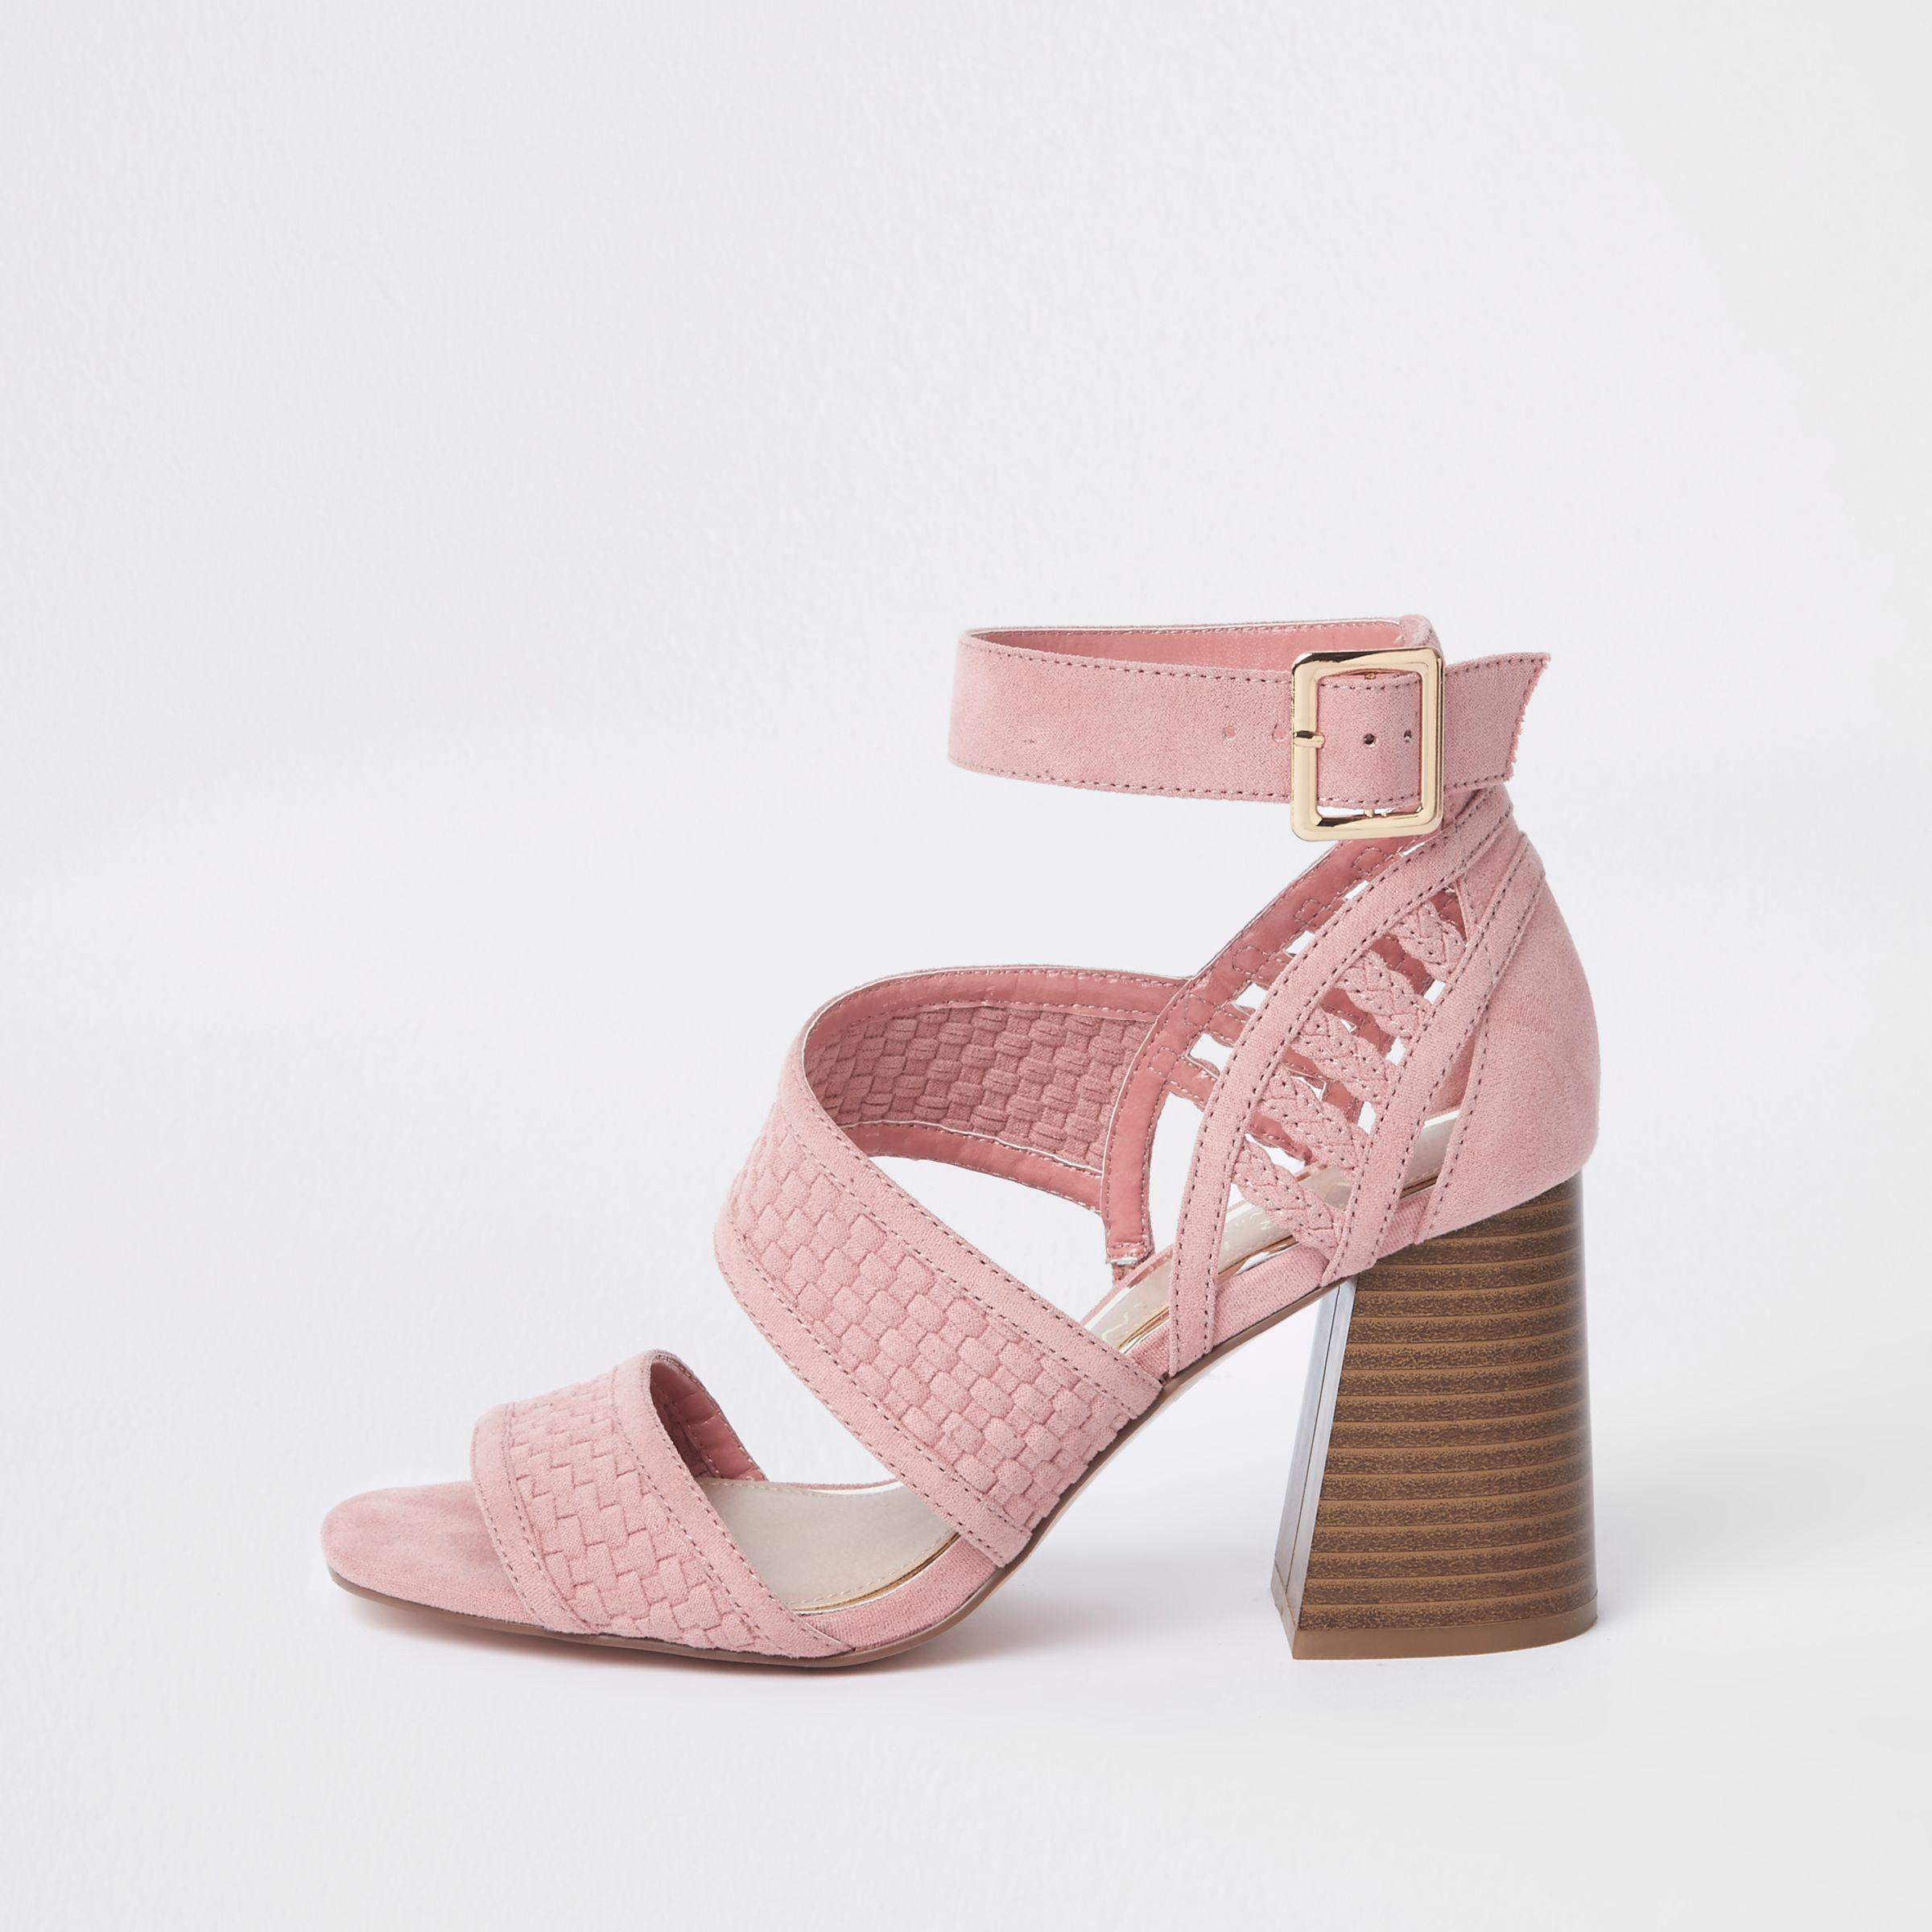 f9cc4ac5a0d Lyst - River Island Pink Wide Fit Strappy Block Heel Sandals in Pink